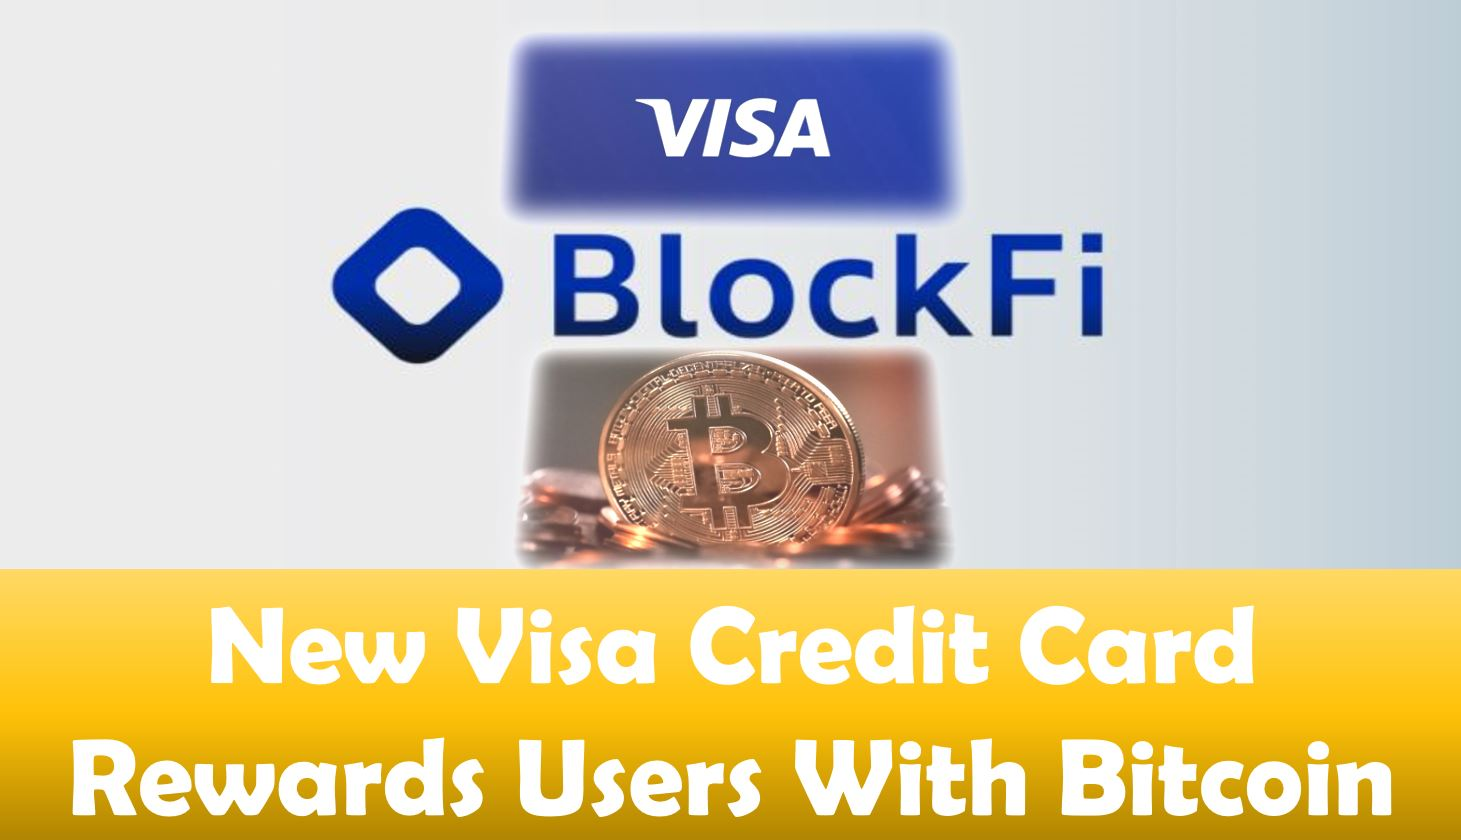 New Visa Credit Card Rewards Users With Bitcoin